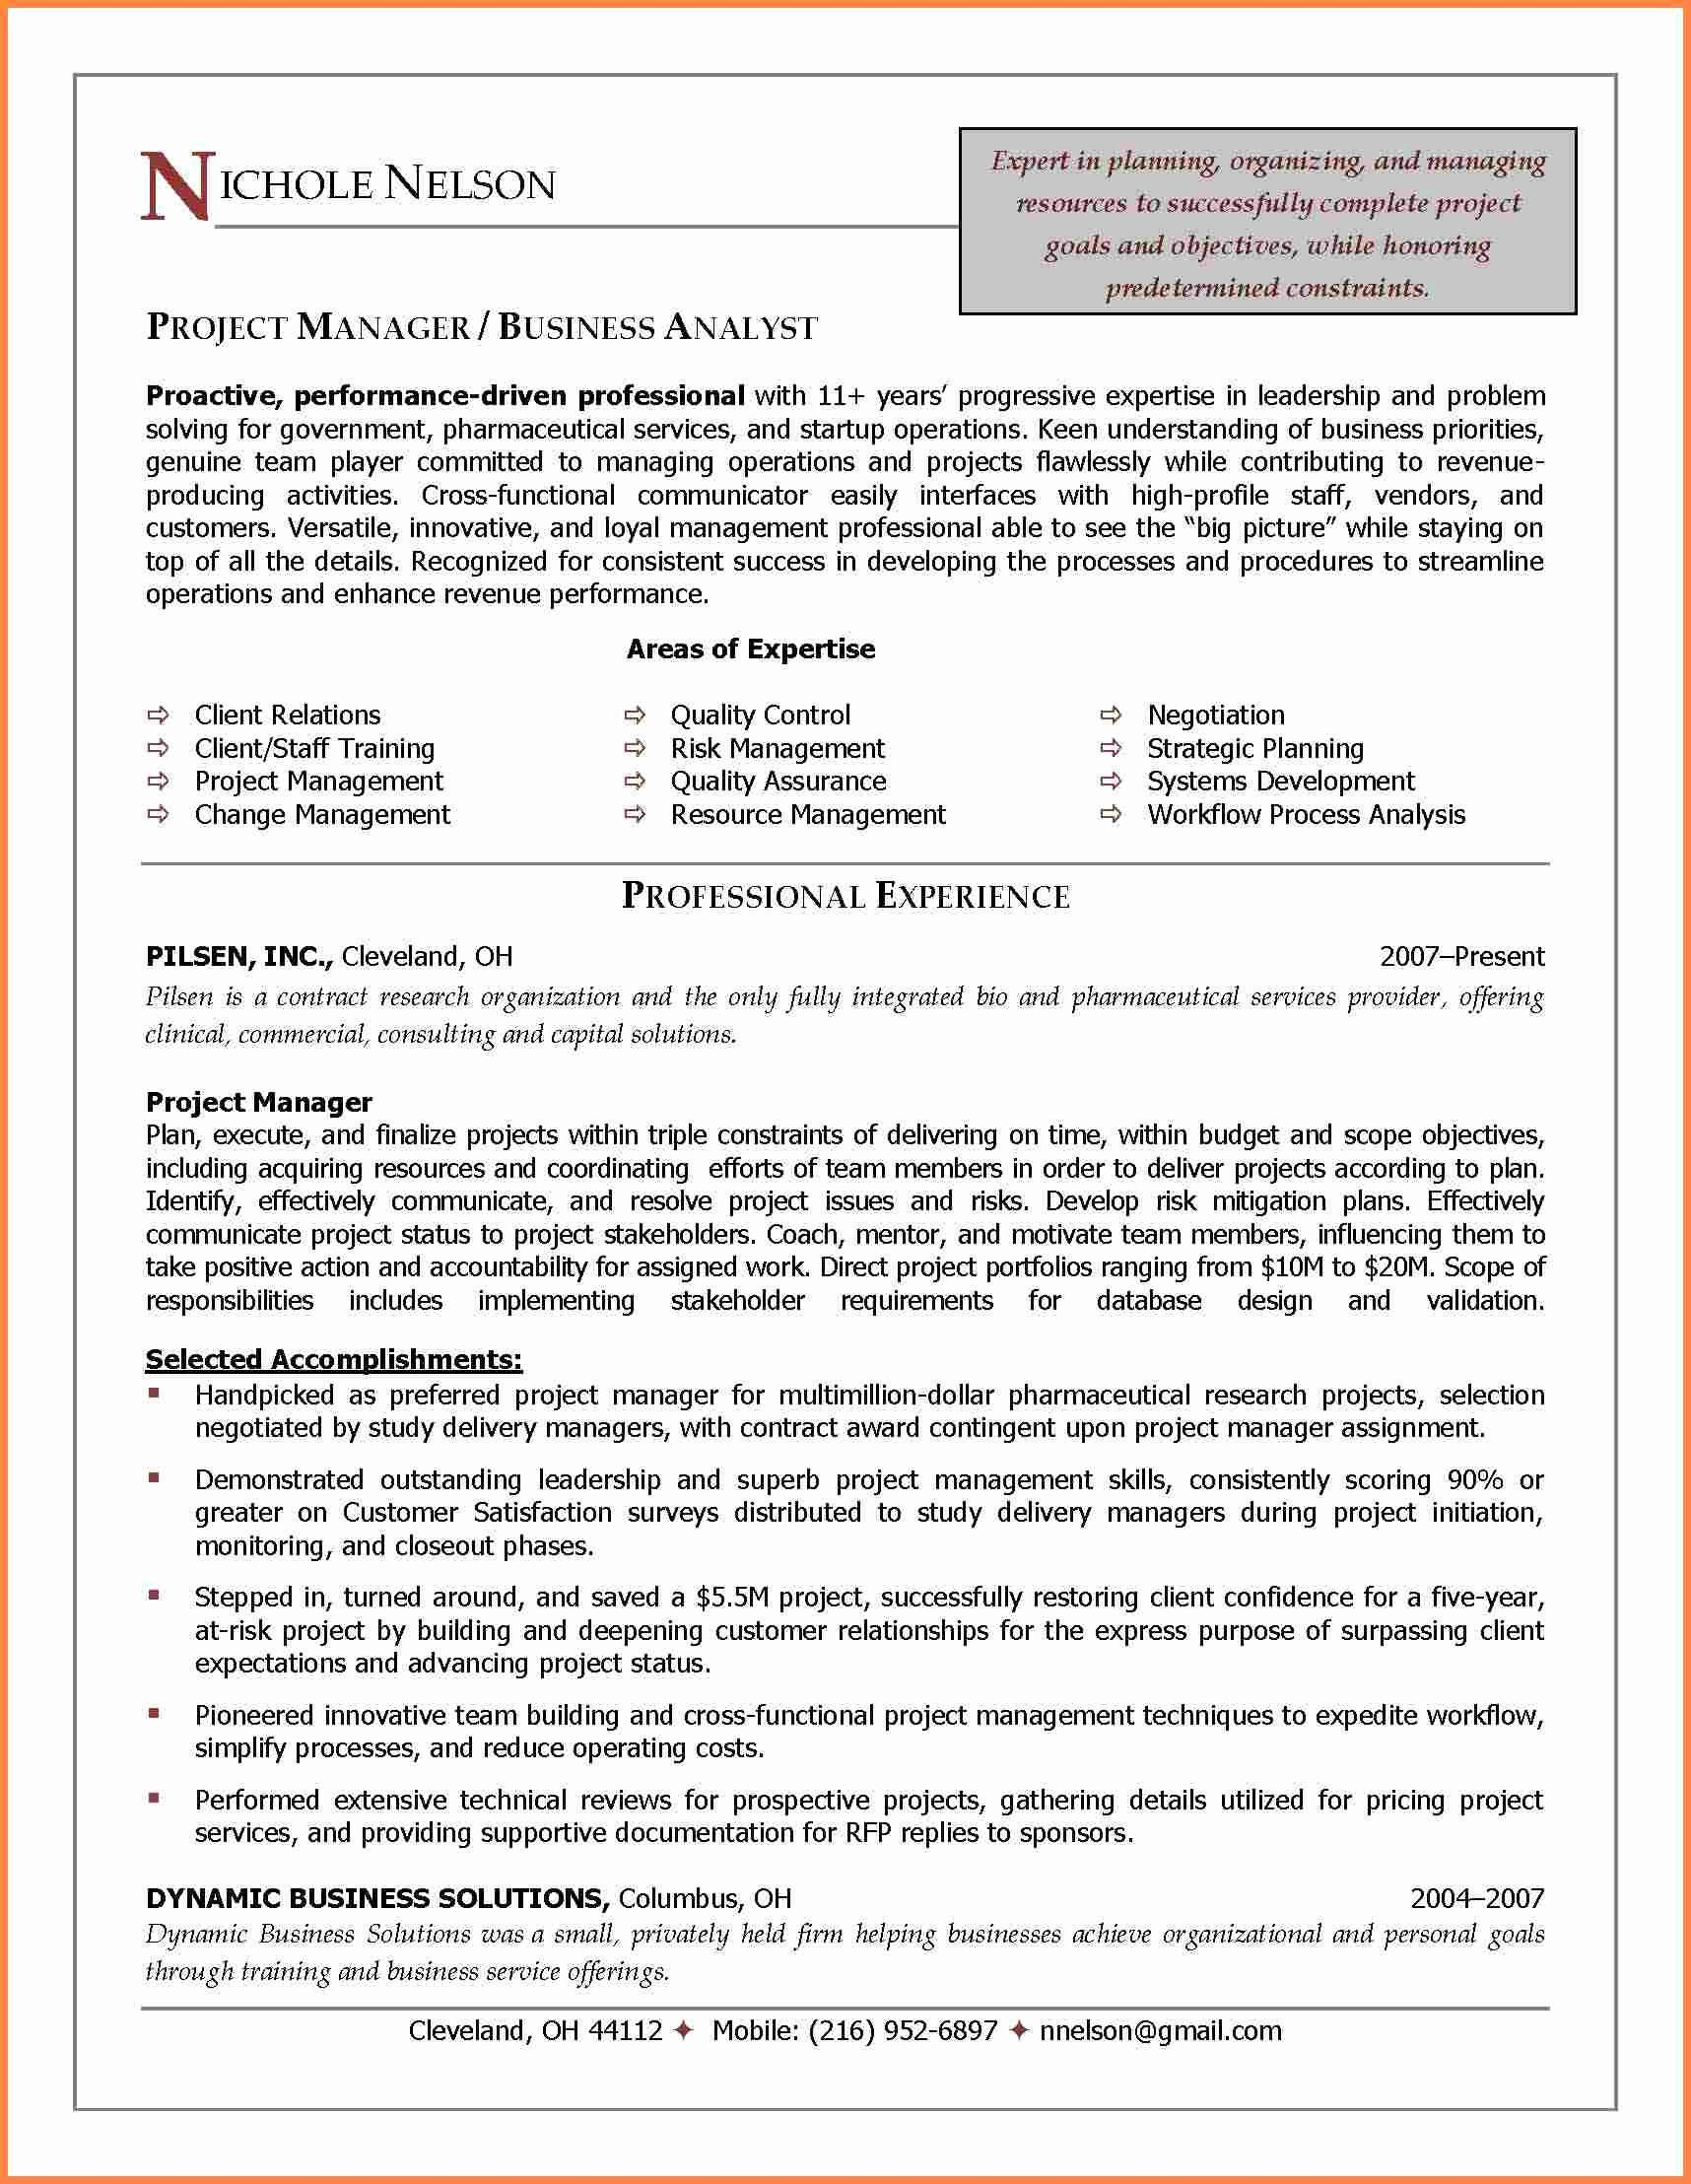 Project Management Contract Template In 2020 Business Analyst